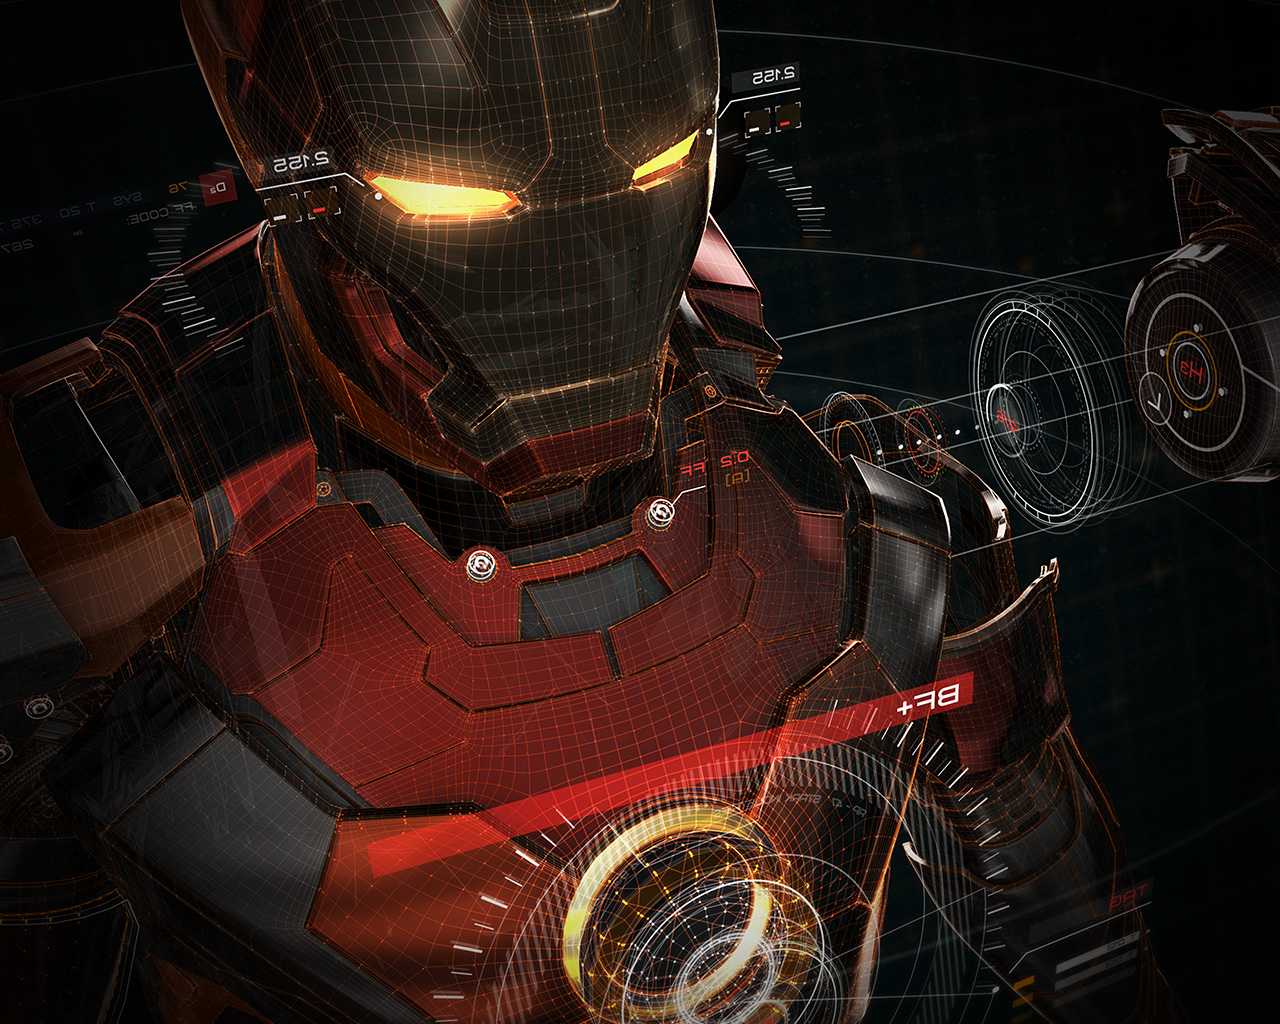 Best 3d Iphone Wallpapers I Love Papers Aq06 Ironman 3d Red Game Avengers Art